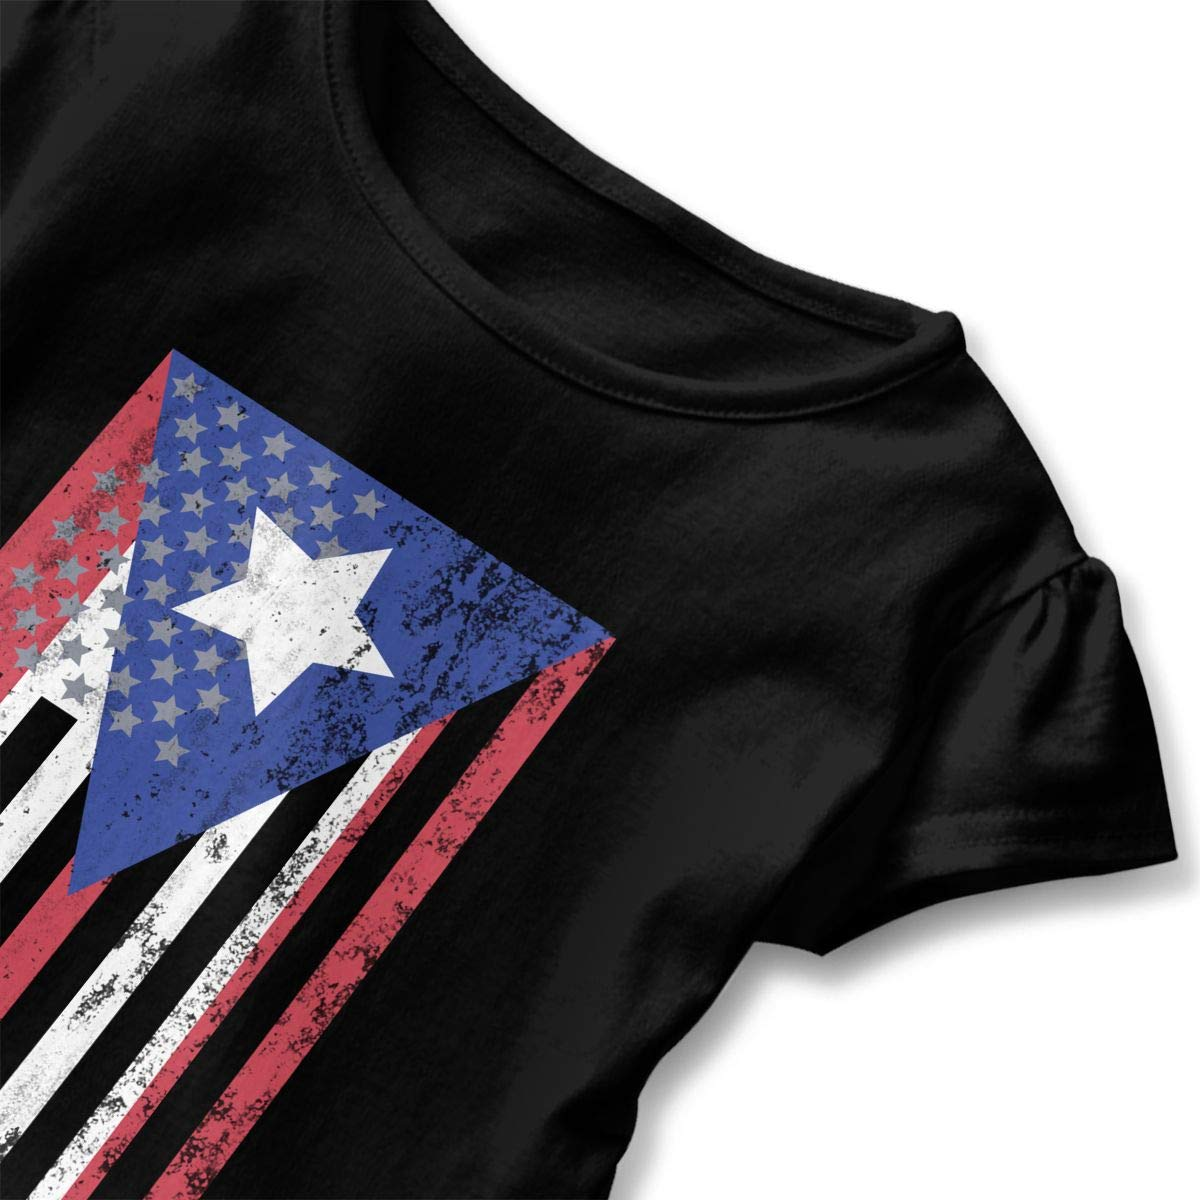 Puerto Rico American Flag Childrens Girls Short Sleeve T-Shirts Ruffles Shirt Tee Jersey for 2-6T